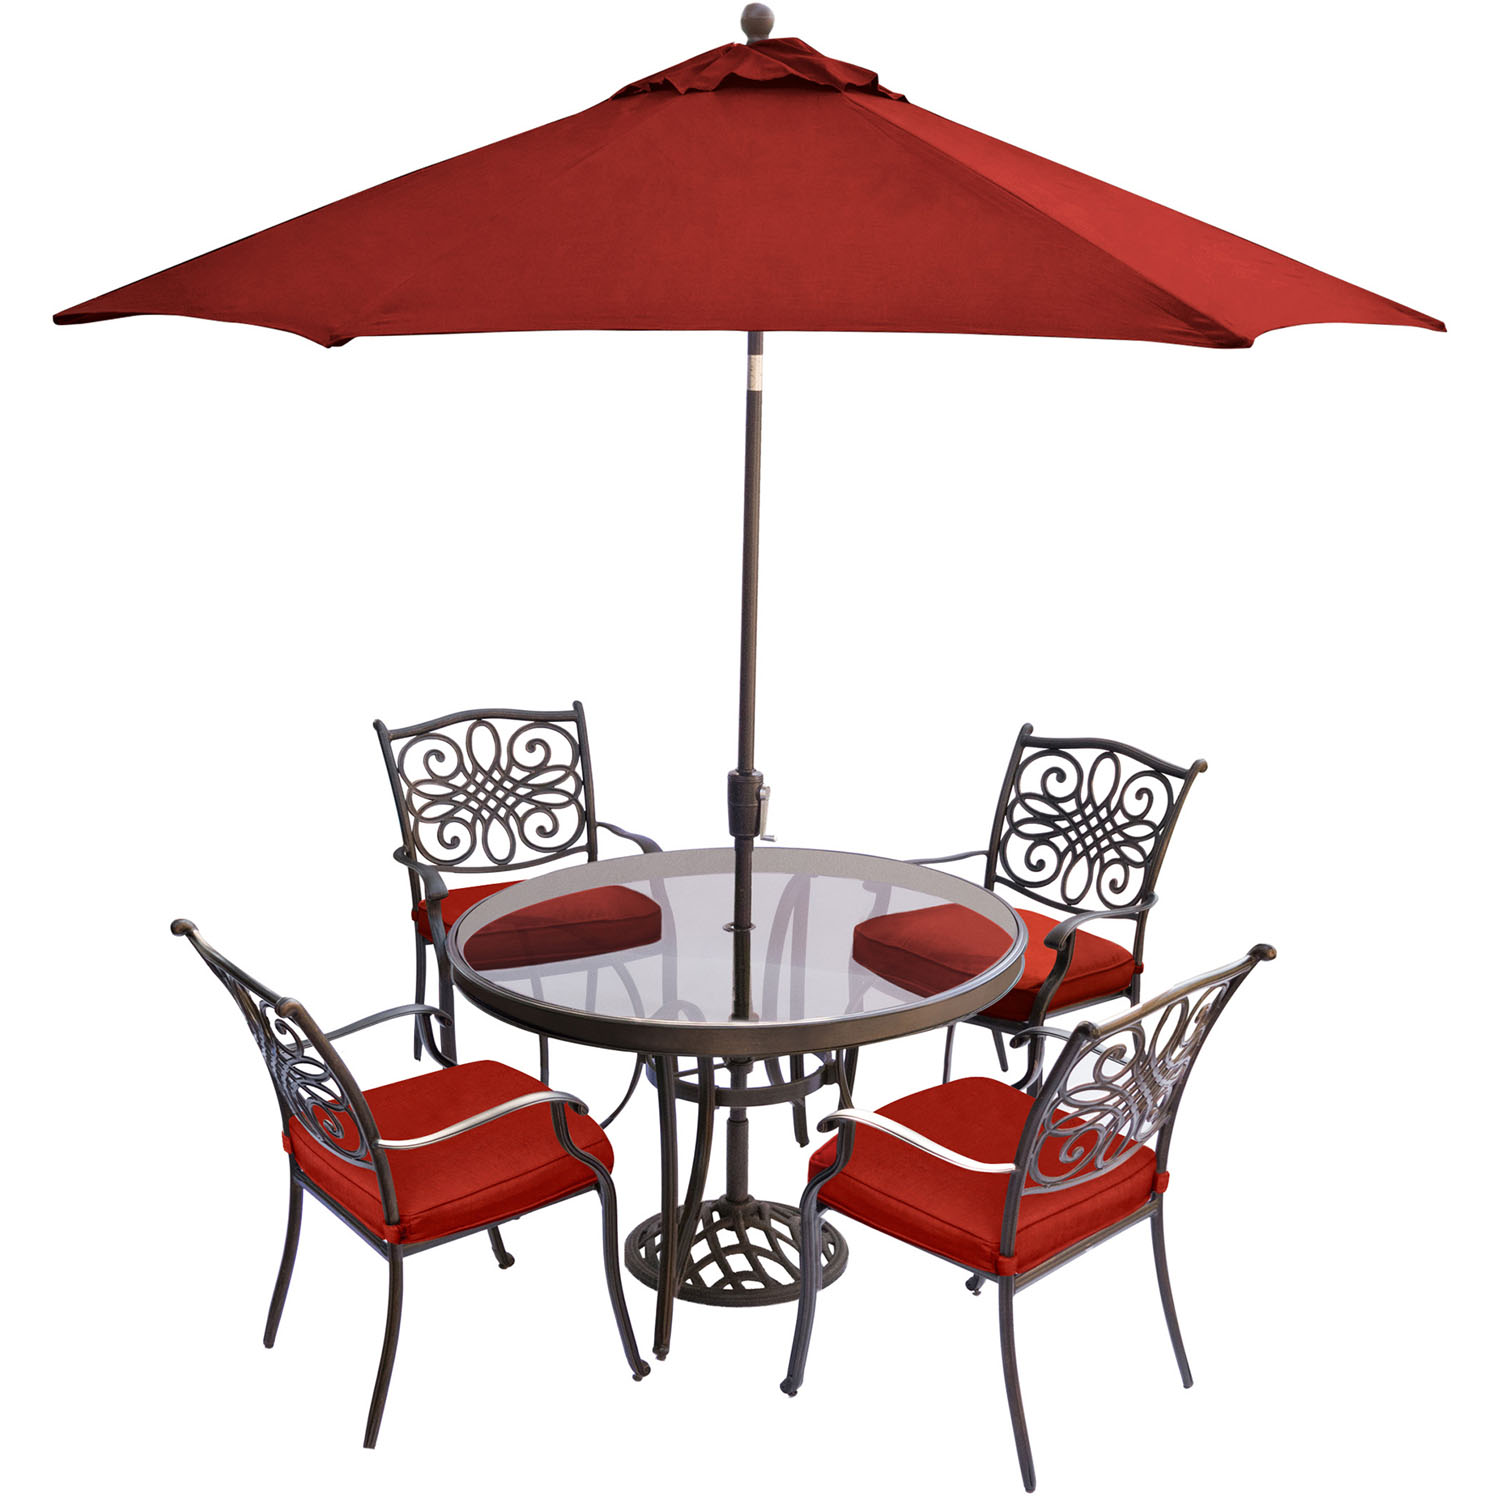 Hanover Traditions 5-Piece Outdoor Dining Set with Round Glass-Top Table, 4 Stationary Chairs, 9-Ft. Table Umbrella and Stand